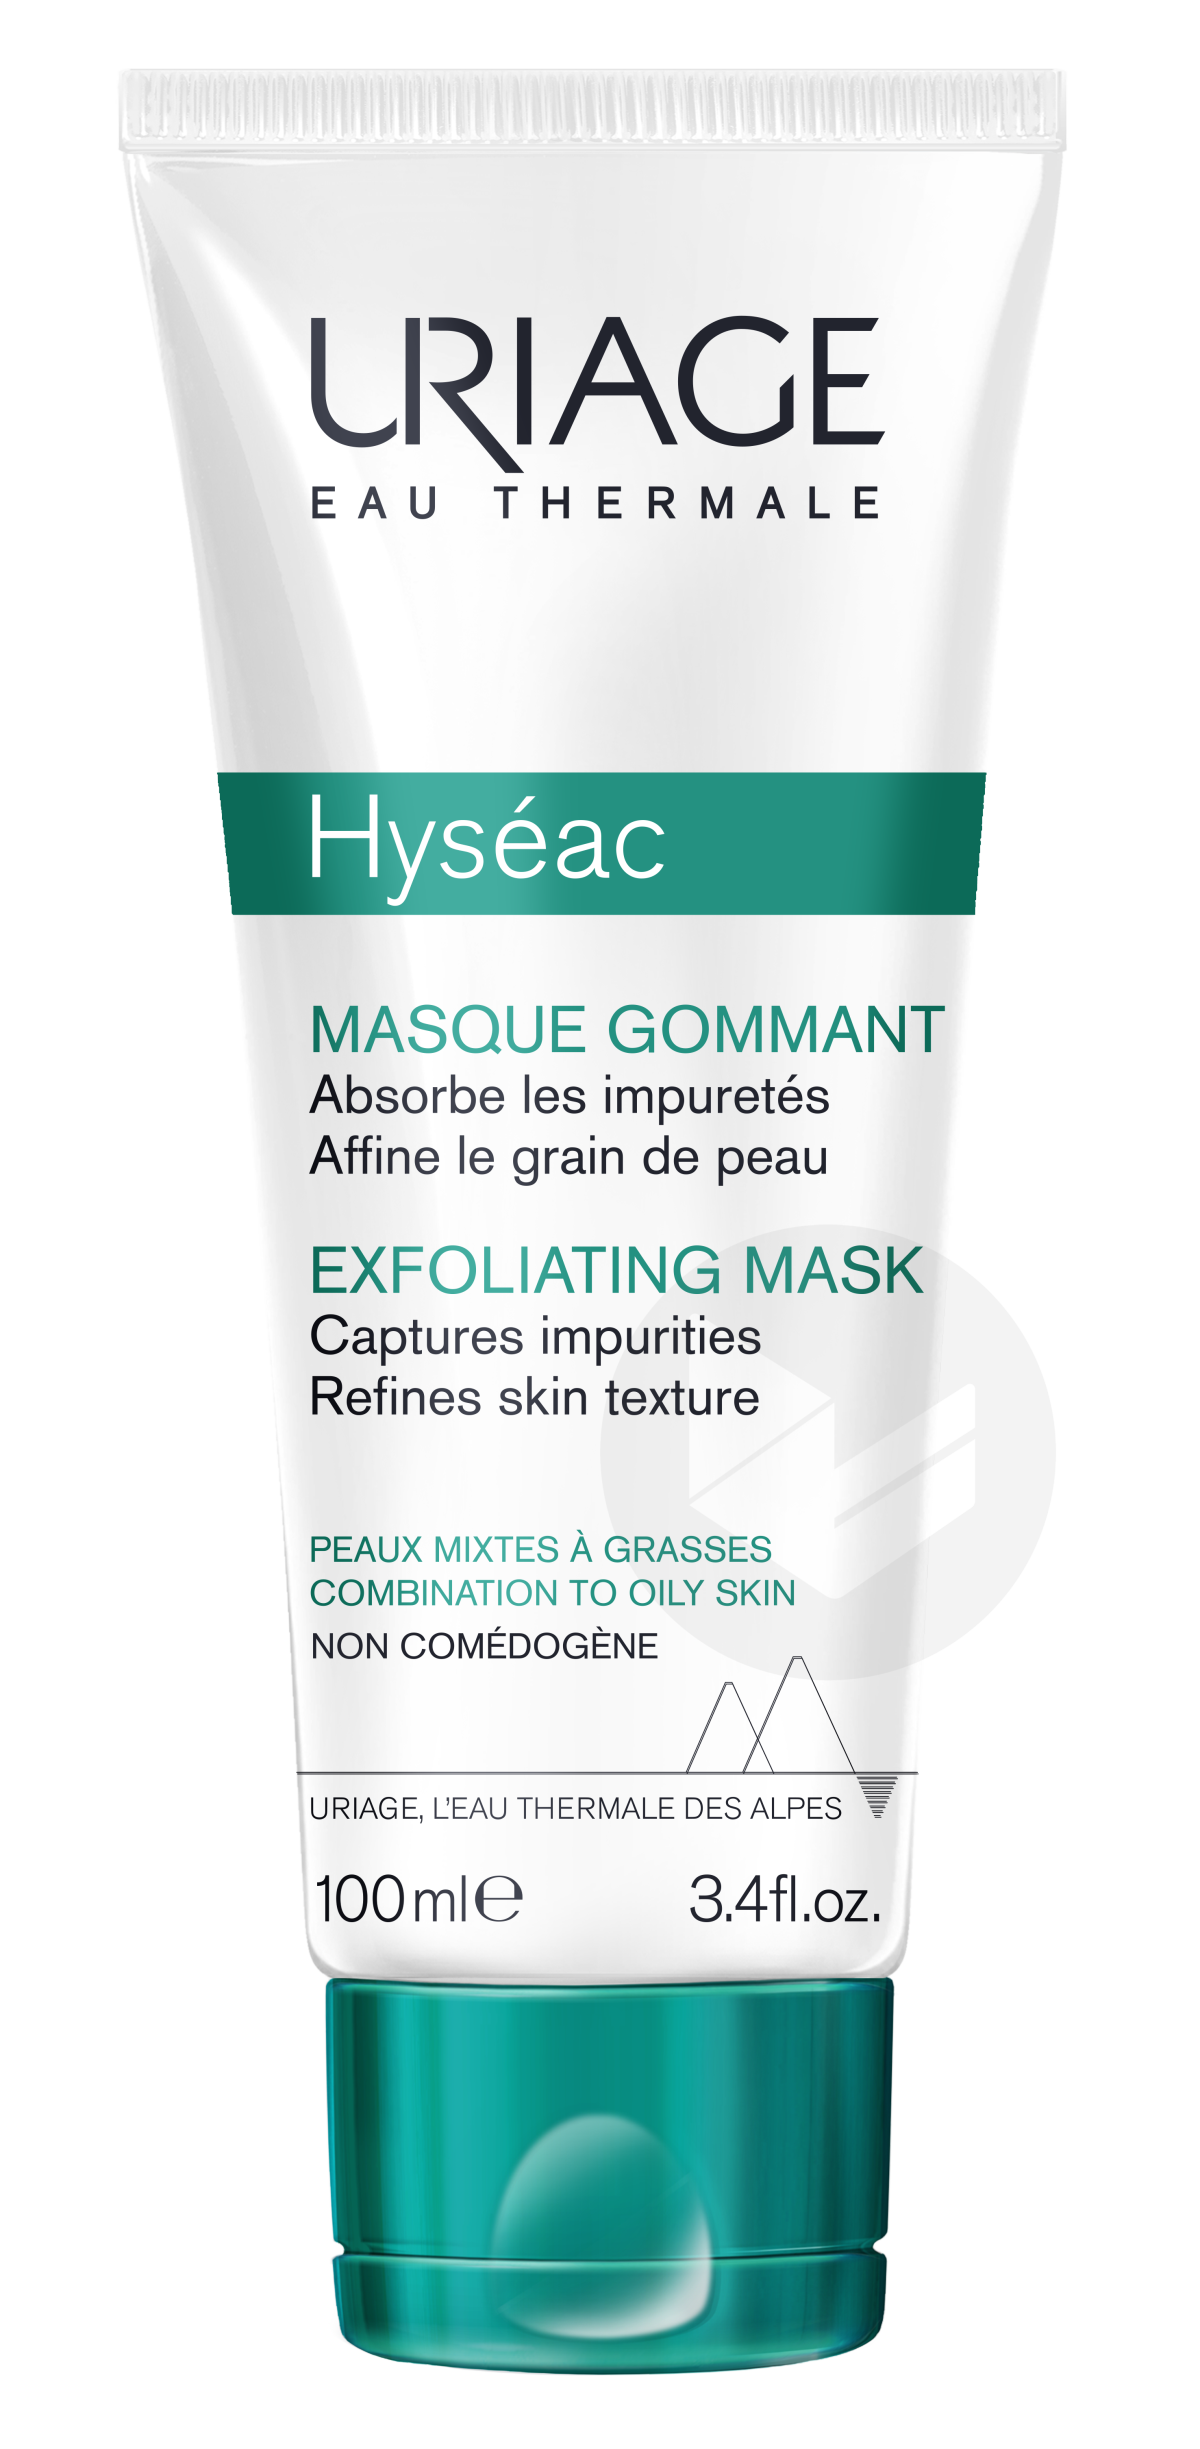 Hyseac Masque Gommant 100 Ml